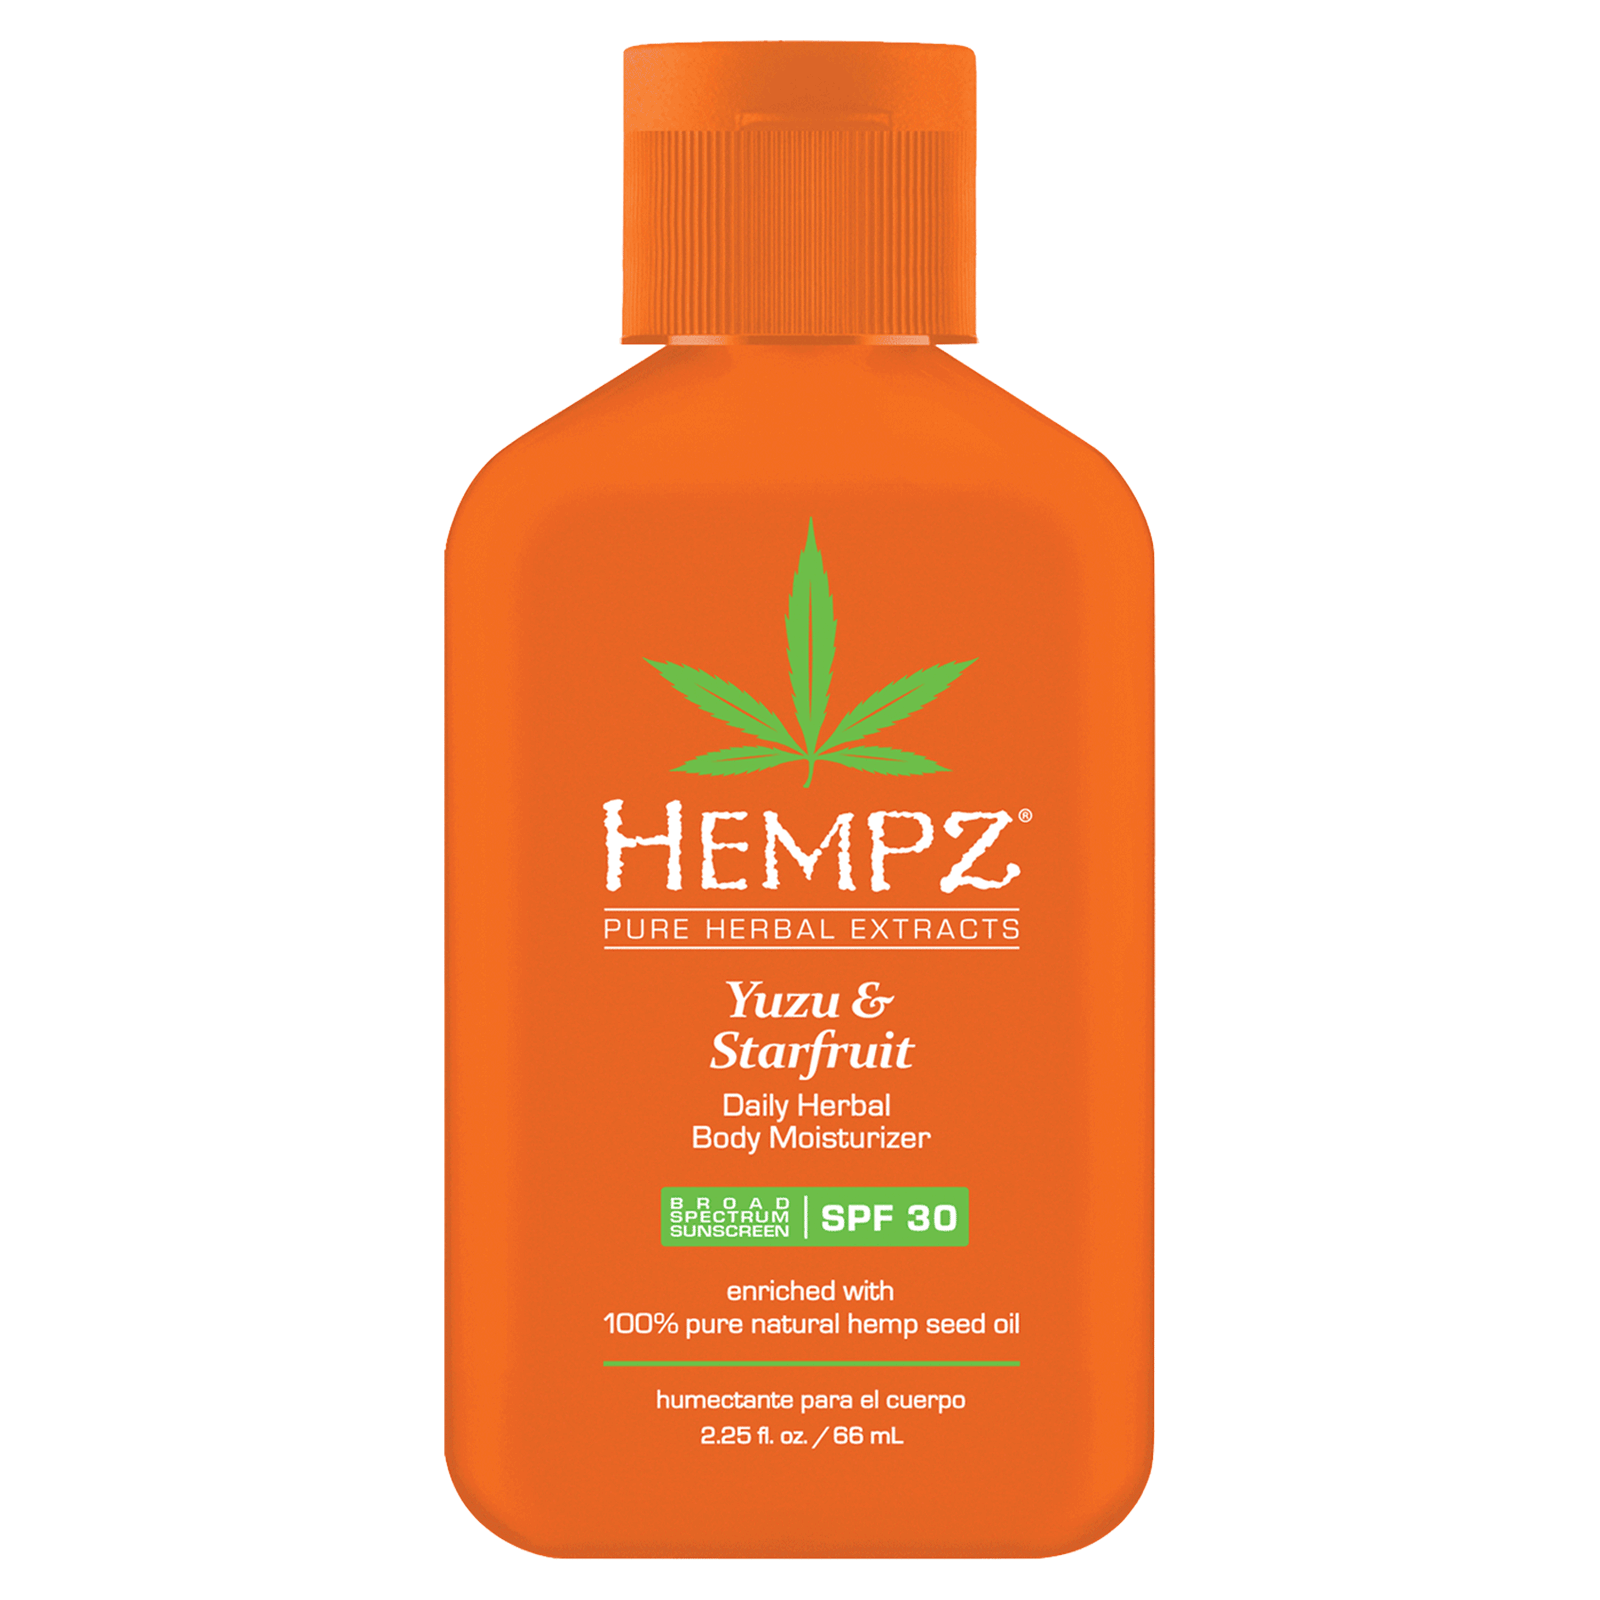 Daily Body Moisturizer SPF 30